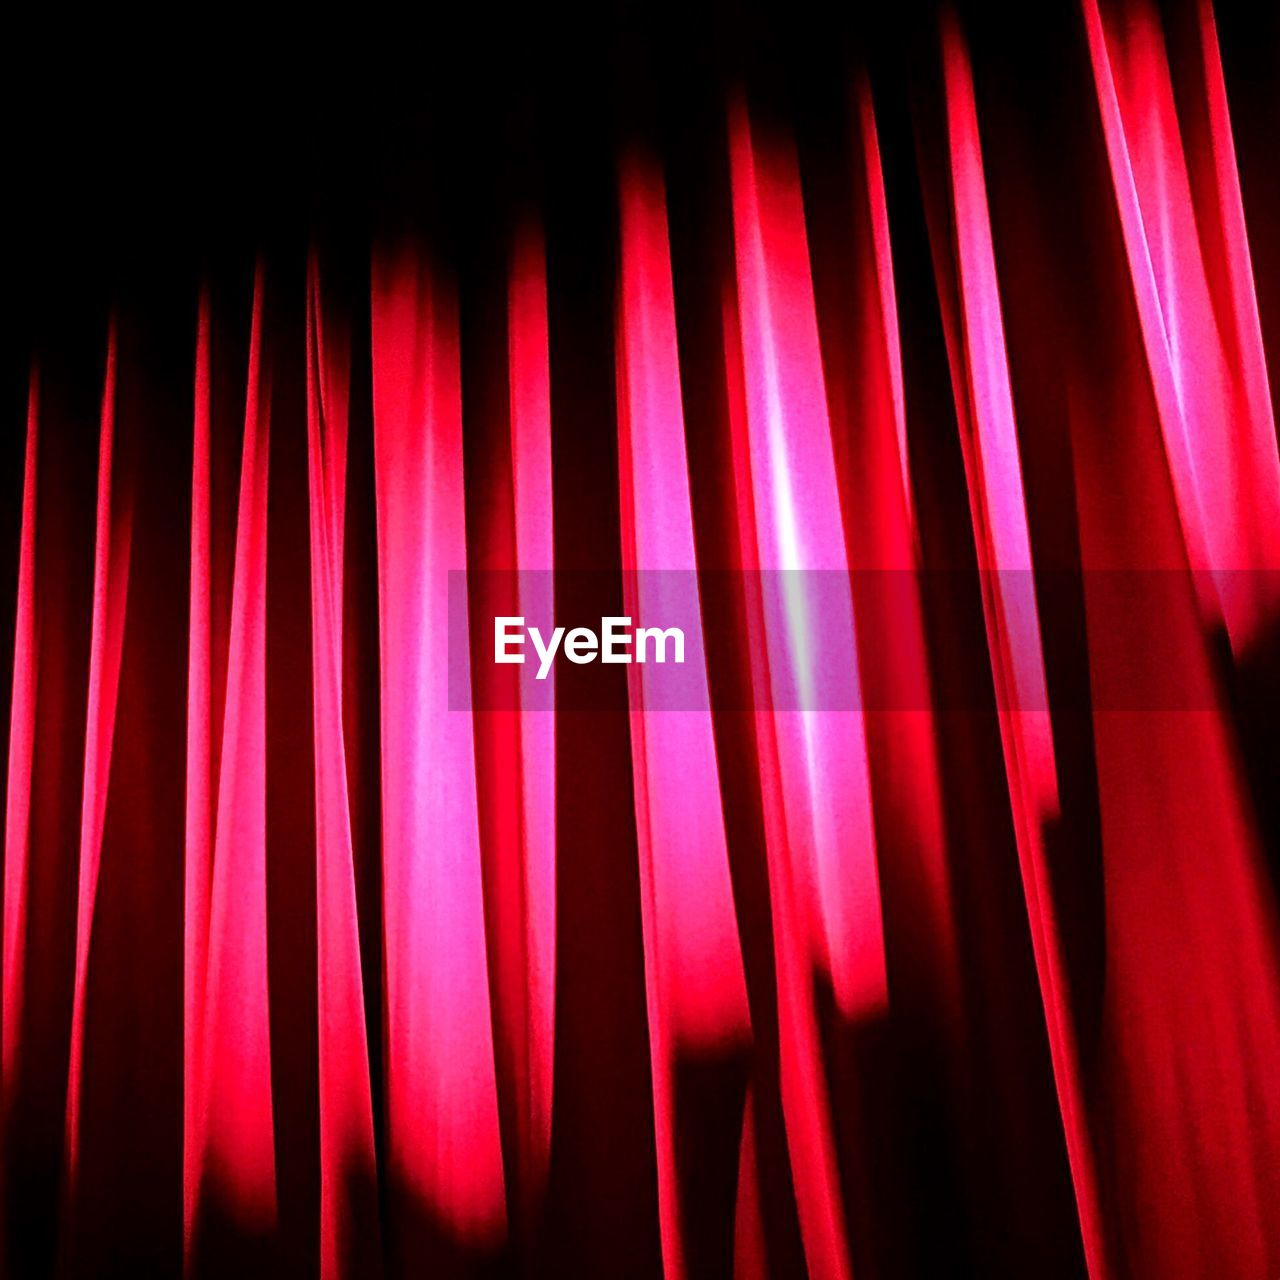 indoors, red, no people, close-up, pattern, lighting equipment, illuminated, night, backgrounds, full frame, light, arts culture and entertainment, curtain, light - natural phenomenon, abstract, music, side by side, motion, electricity, glowing, nightlife, black background, stage